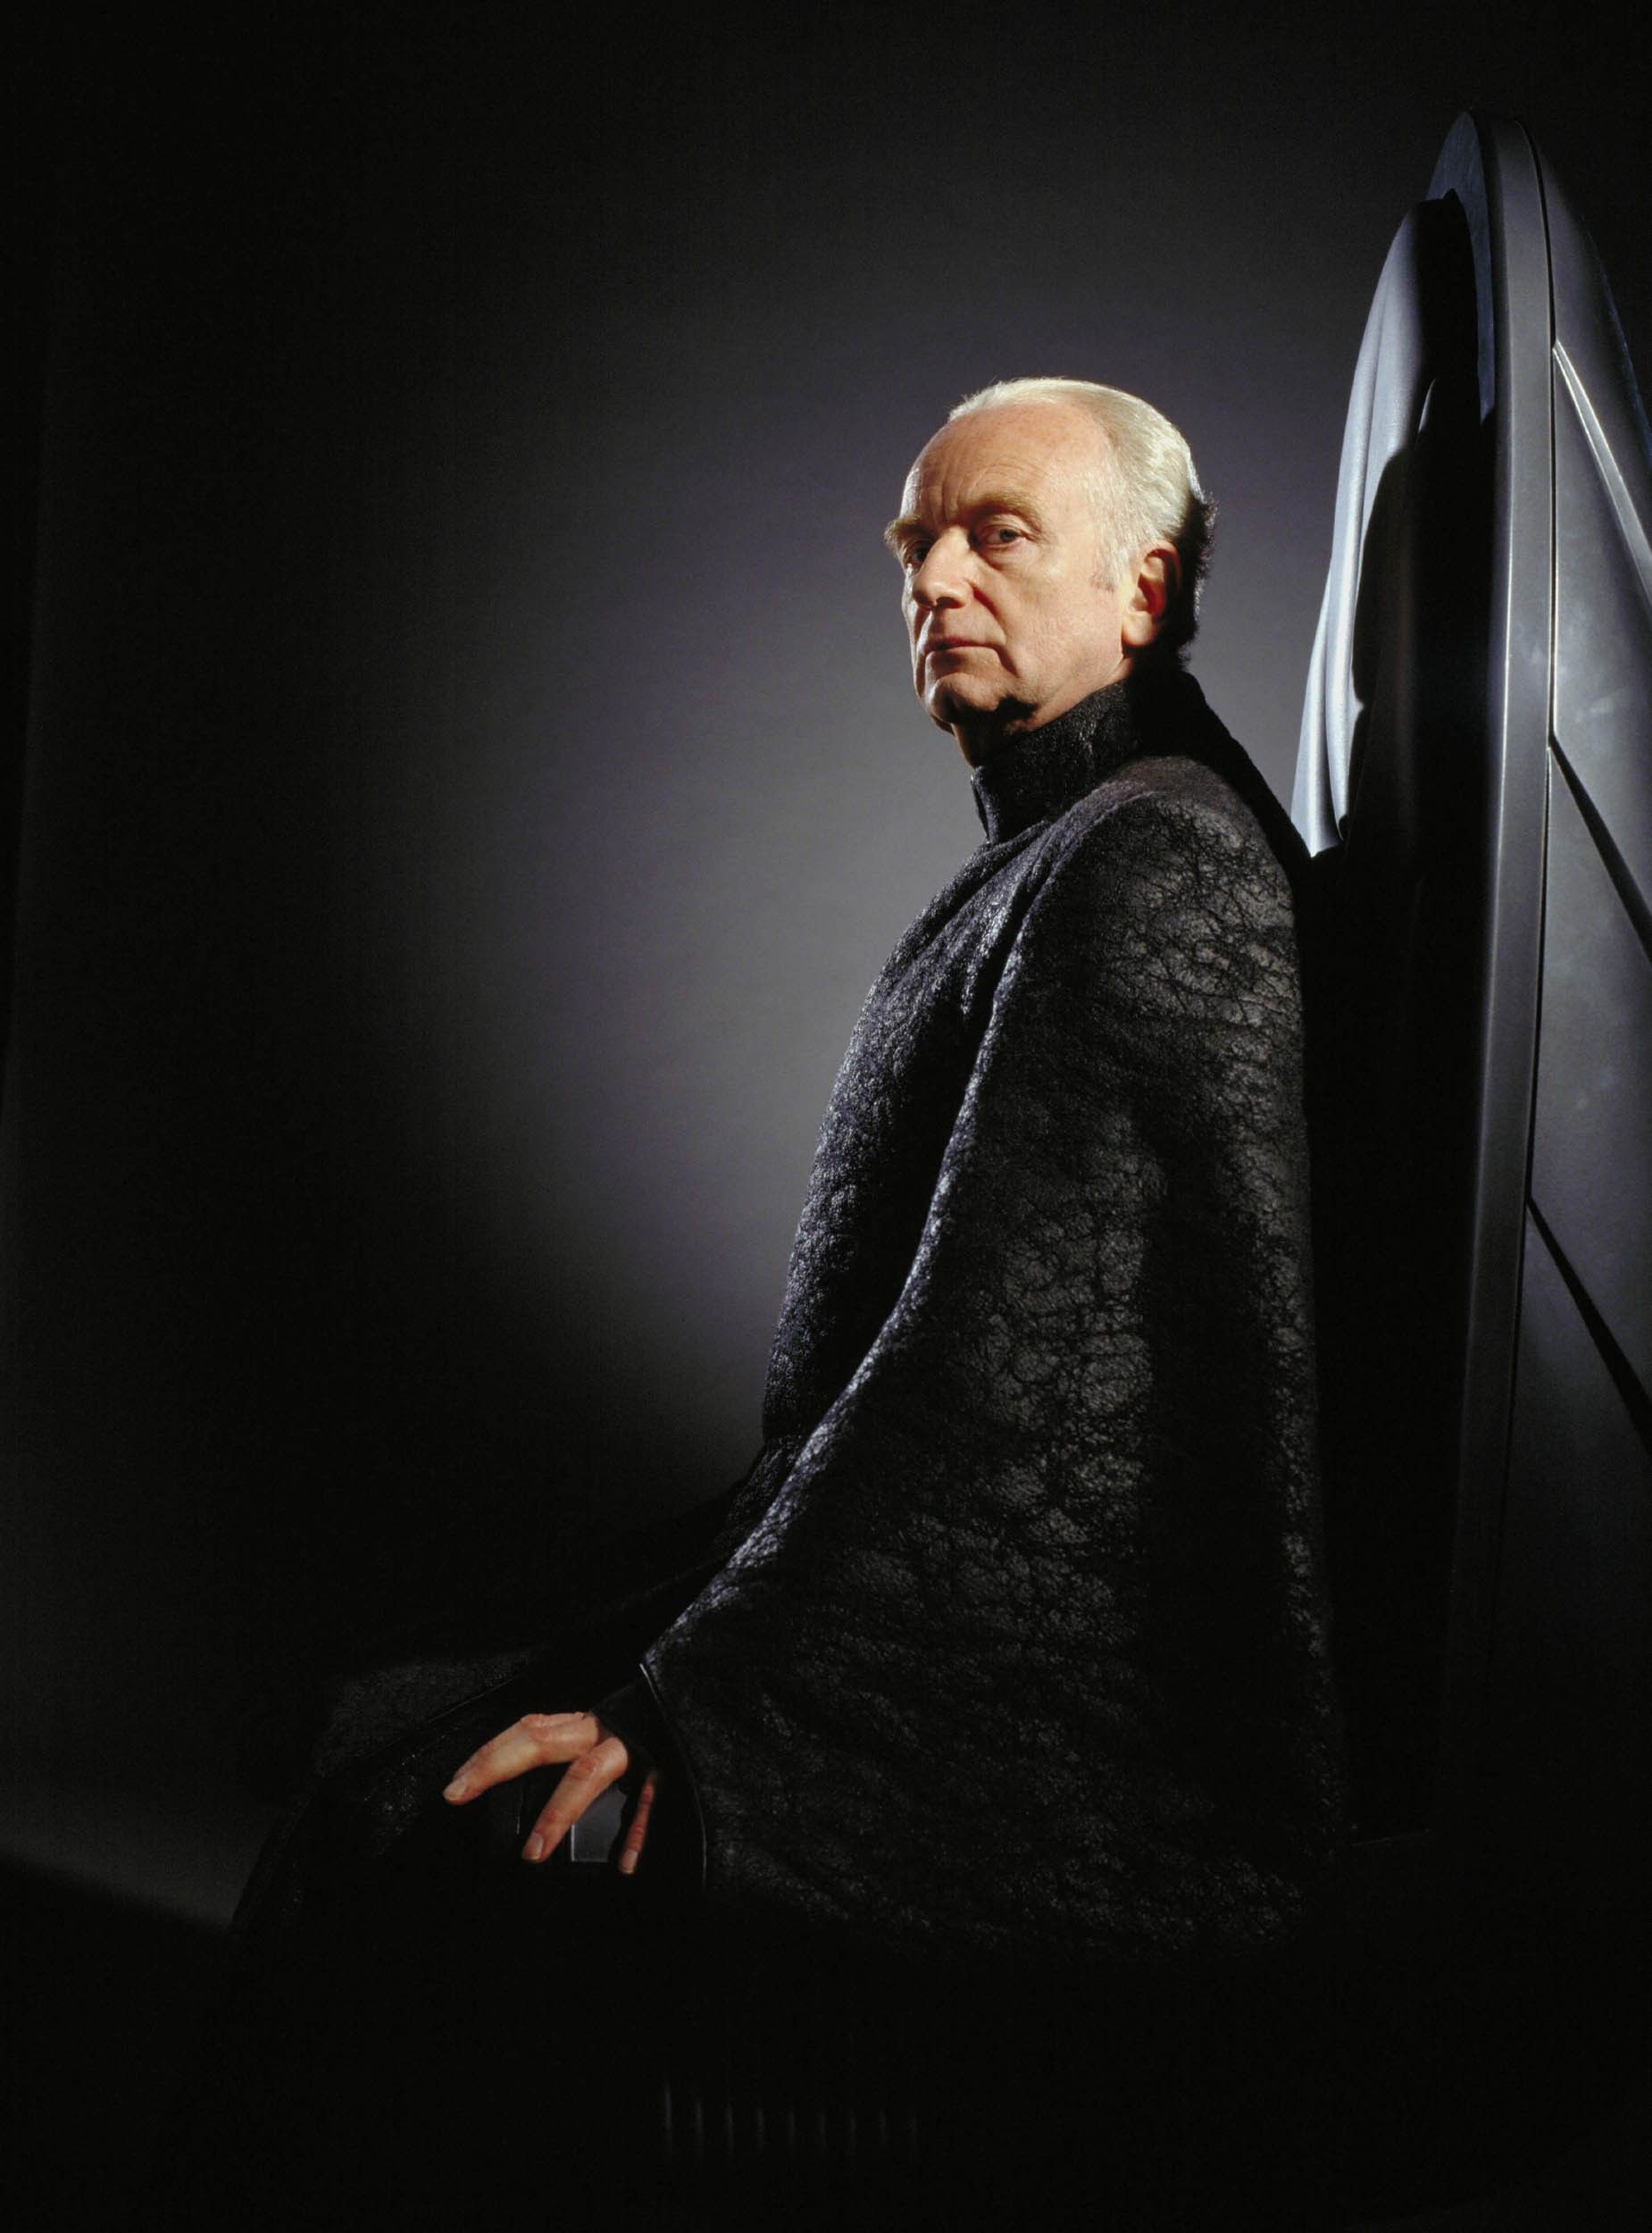 Chancellor Palpatine aka Darth Sidious | Star Wars | Pinterest